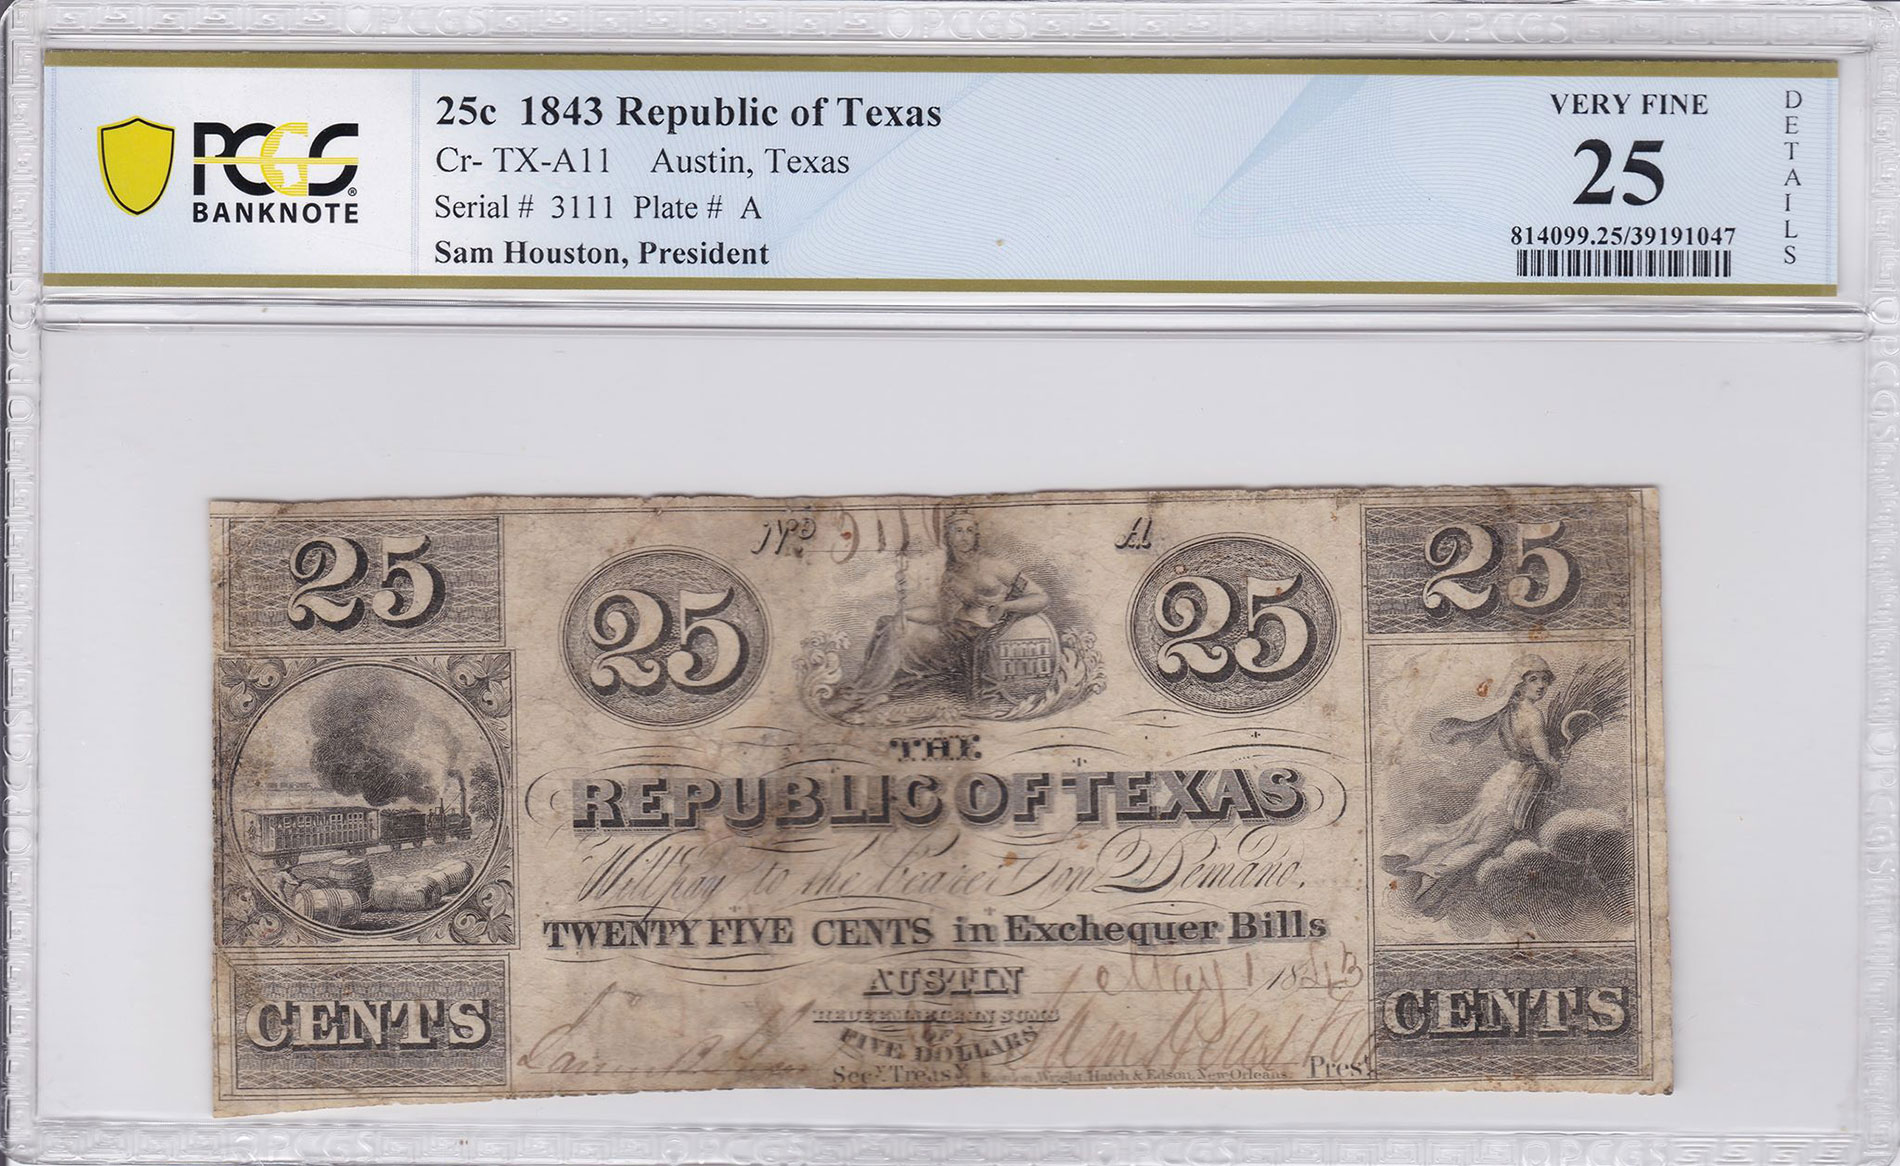 1843 25¢ Exchequer Bill, Republic of Texas, VF25 Details Minor Rust and Restoration. Image courtesy PCGS